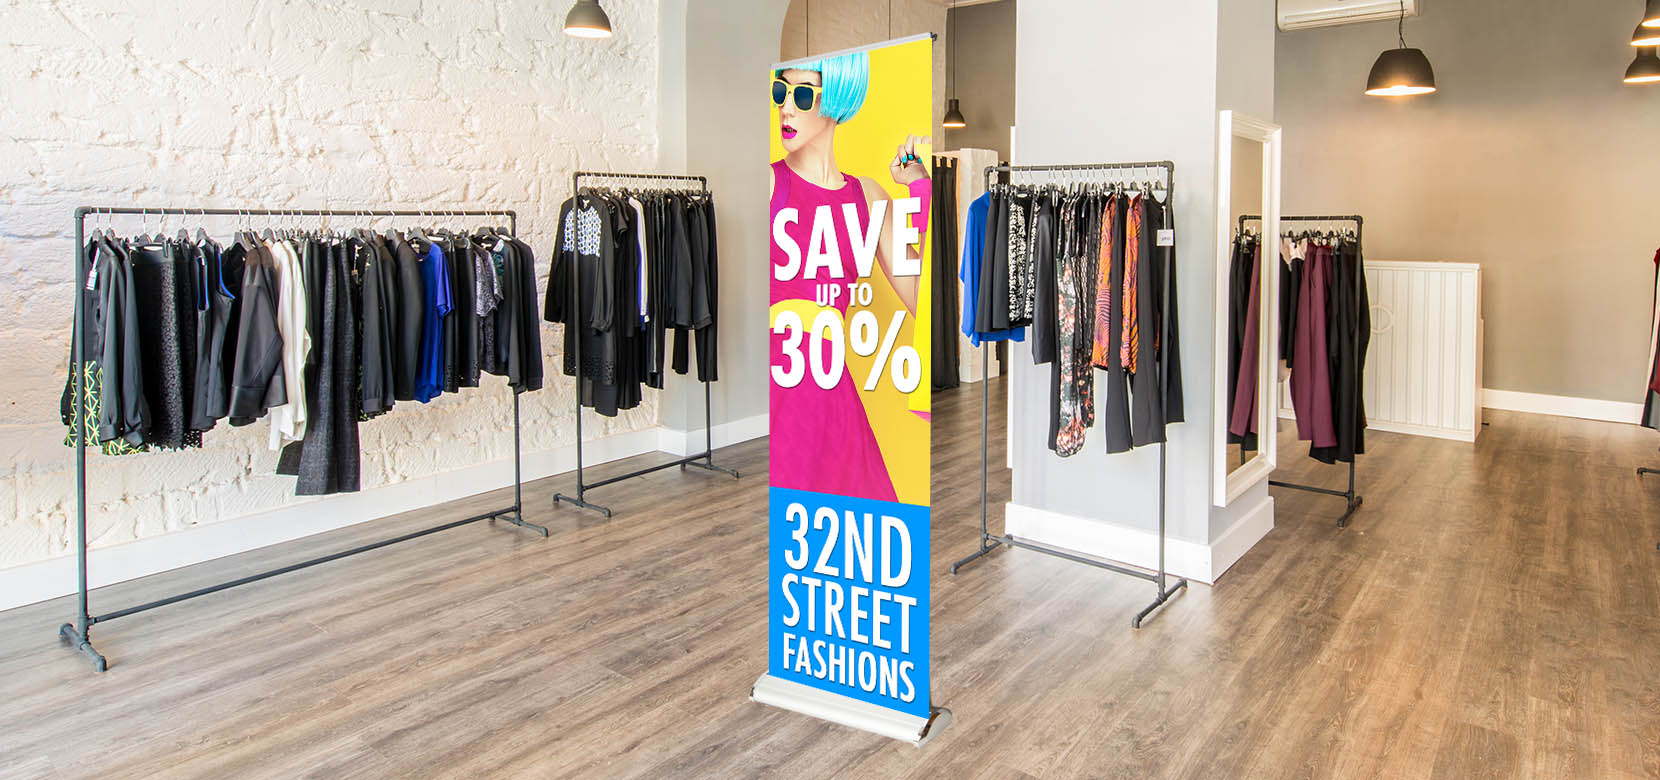 double step retractable banner sign